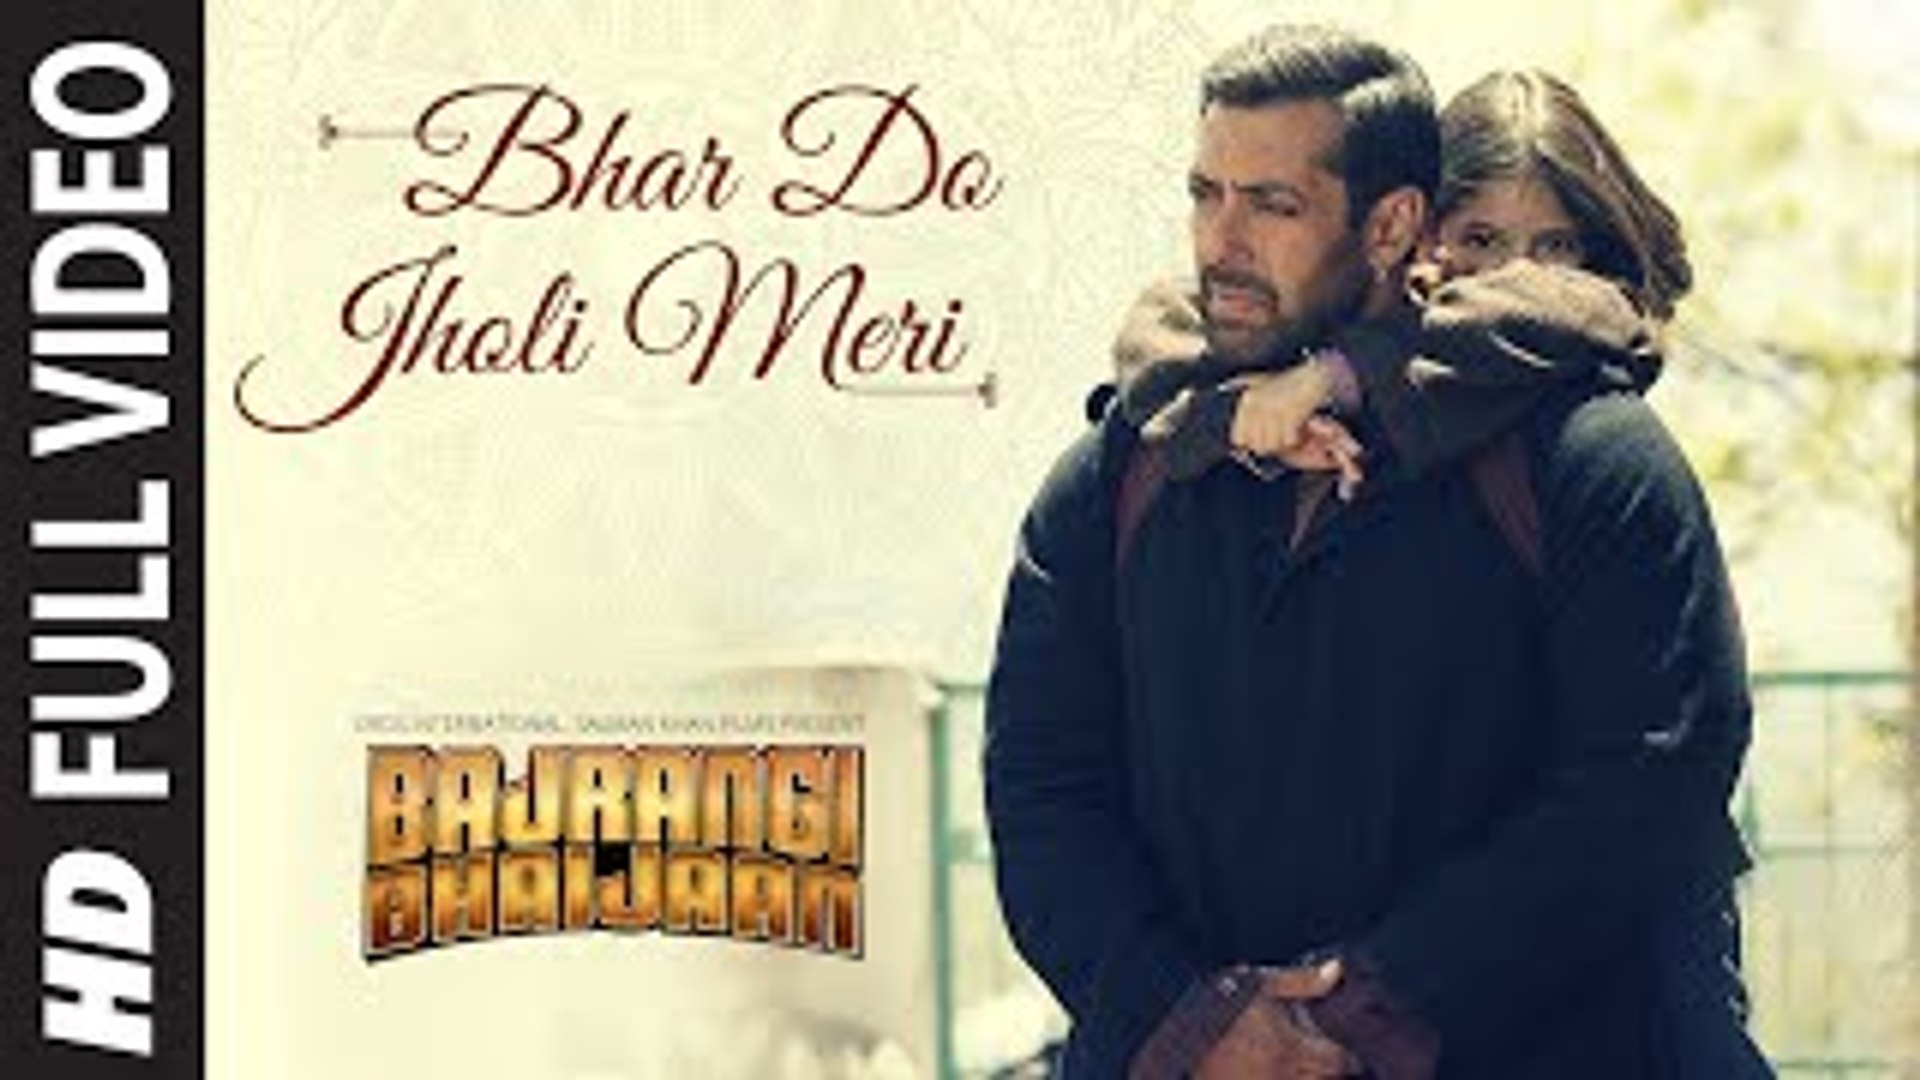 Bhar Do Jholi Meri Bajrangi Bhaijaan Full Video Song Hd Video Dailymotion